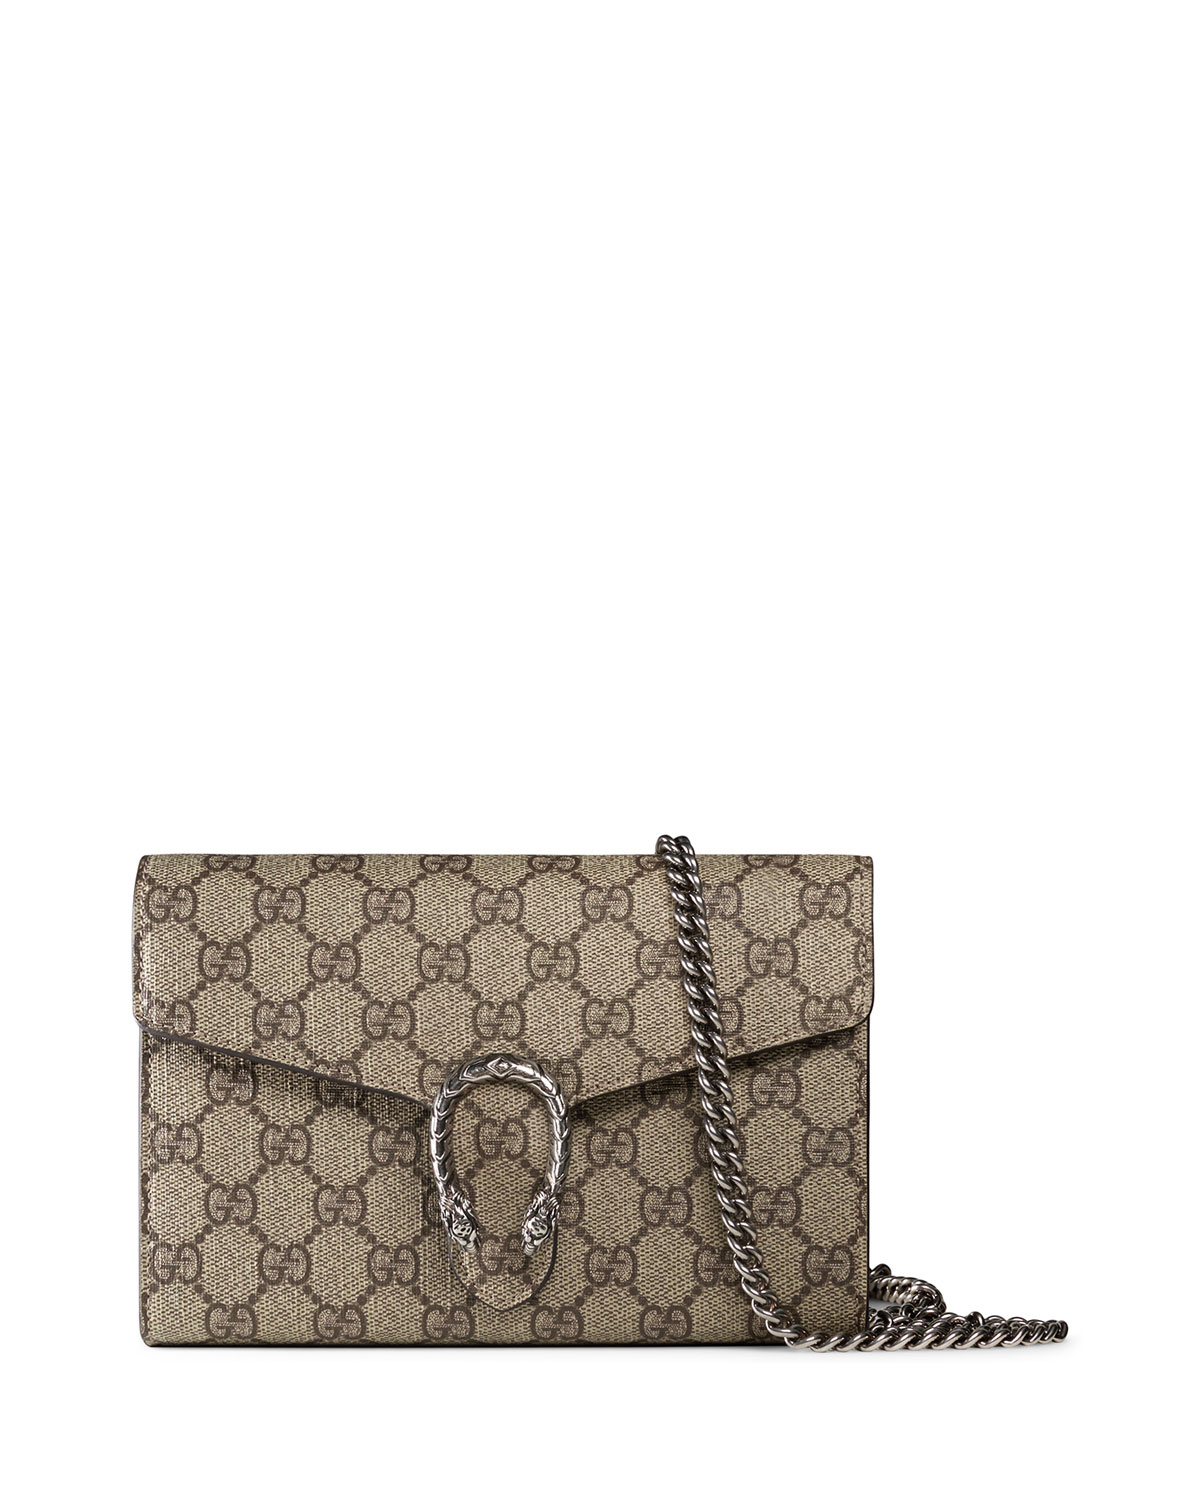 2fea9a3aaec Gucci Dionysus GG Supreme Mini Chain Bag